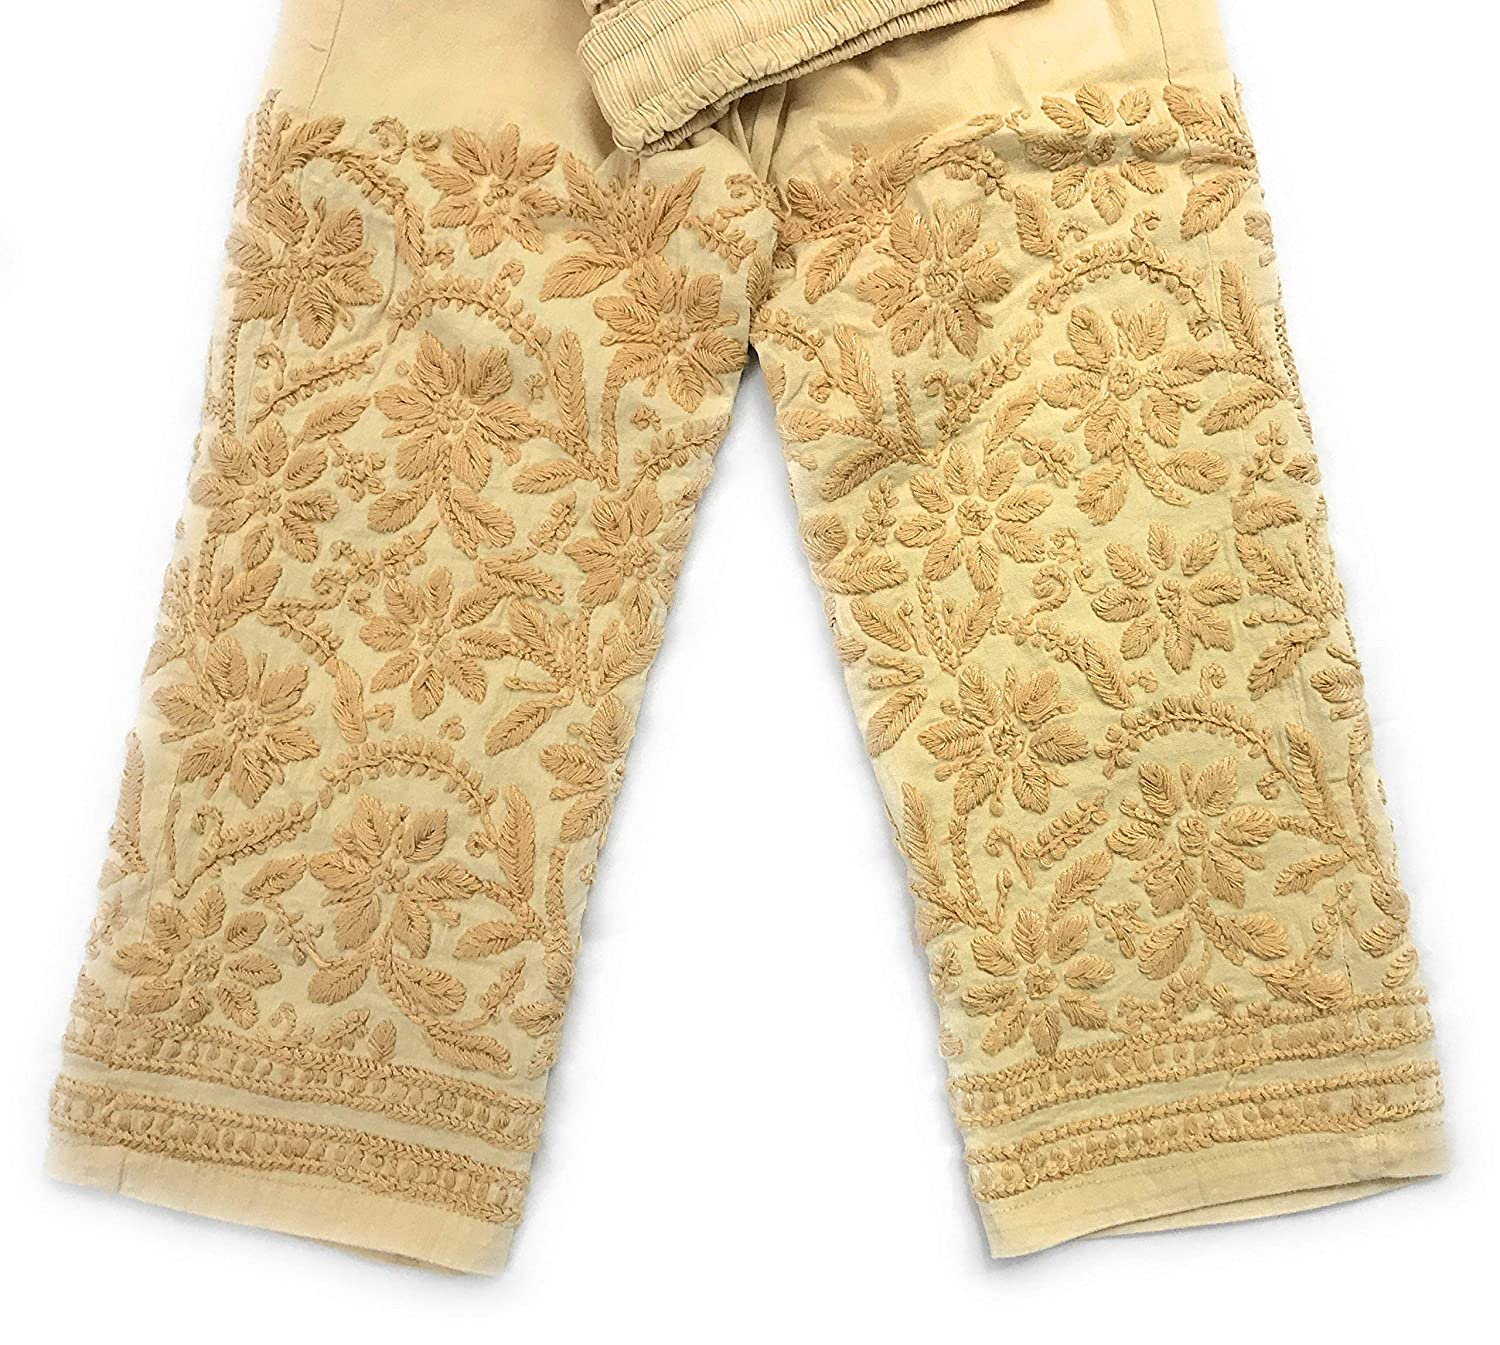 Lucknow Chikankari stretchable cotton leggings, narrow pants/Comfortable ankle length narrow pants Beige/Hand embroidered/One size fits most (Beige) LENGTH:37 Inches